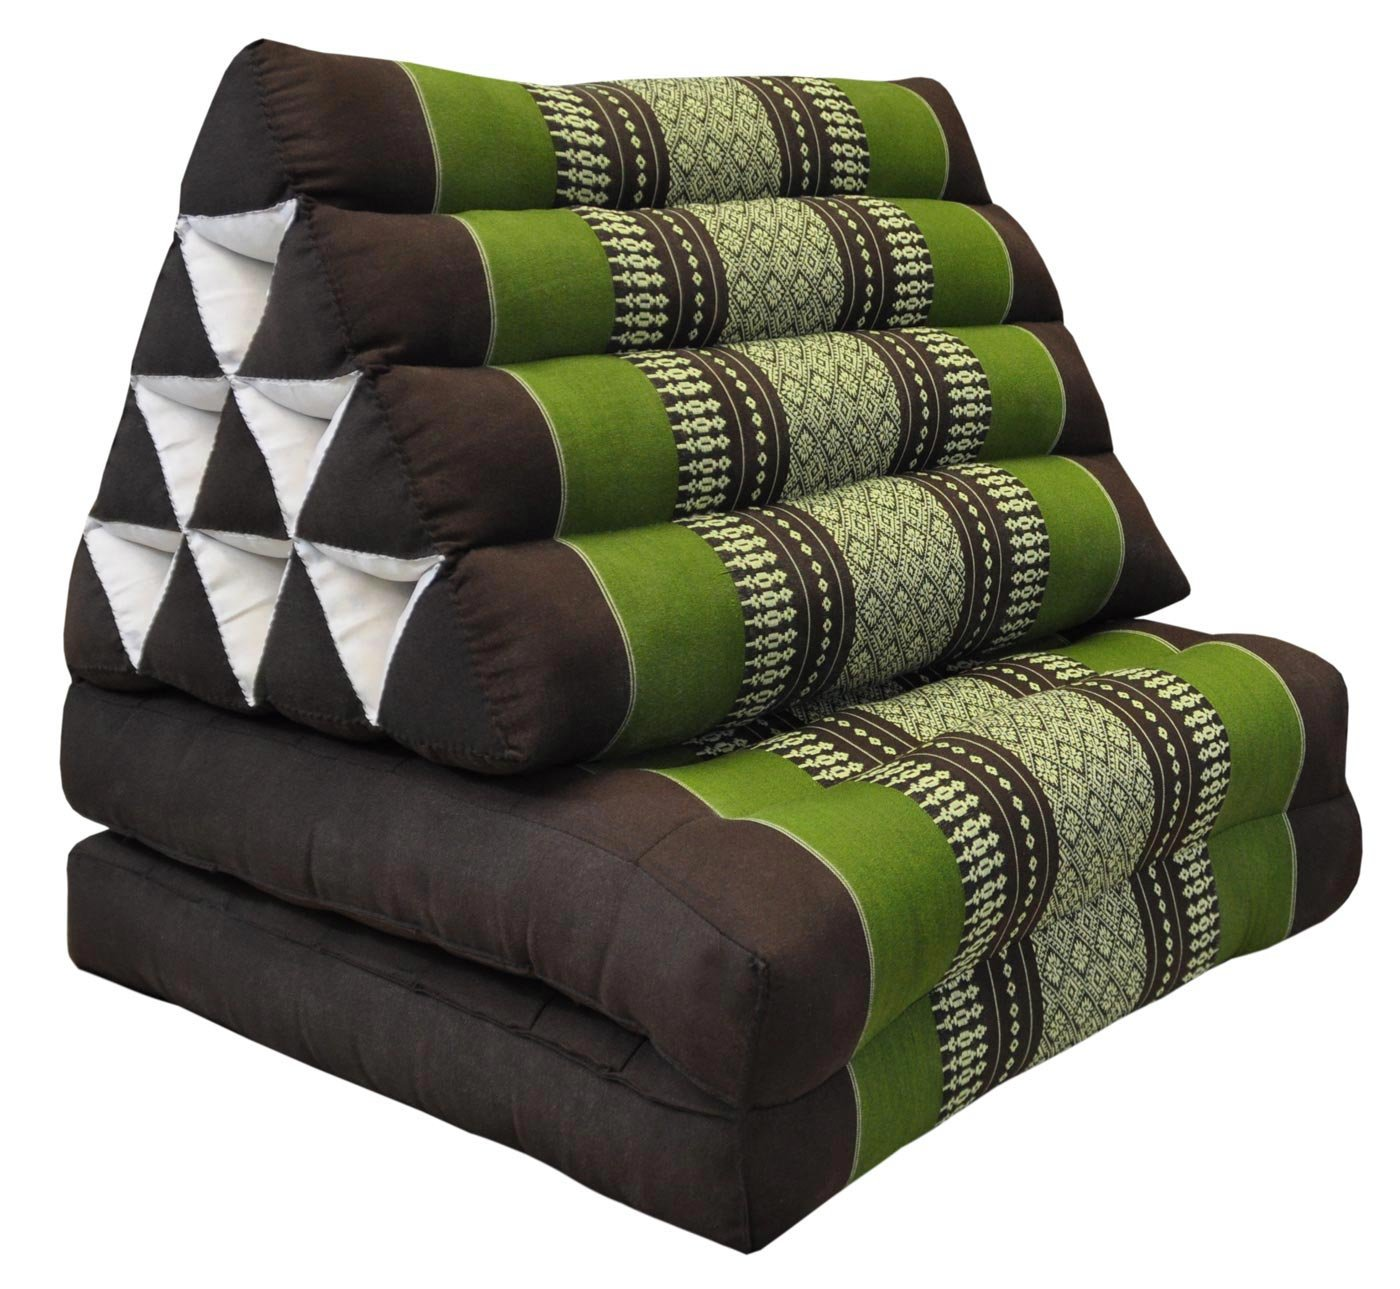 Tungyashop@thai Traditional Cushion Kapok Mattress (Green-Brown, 2 Fold) by NOINOI